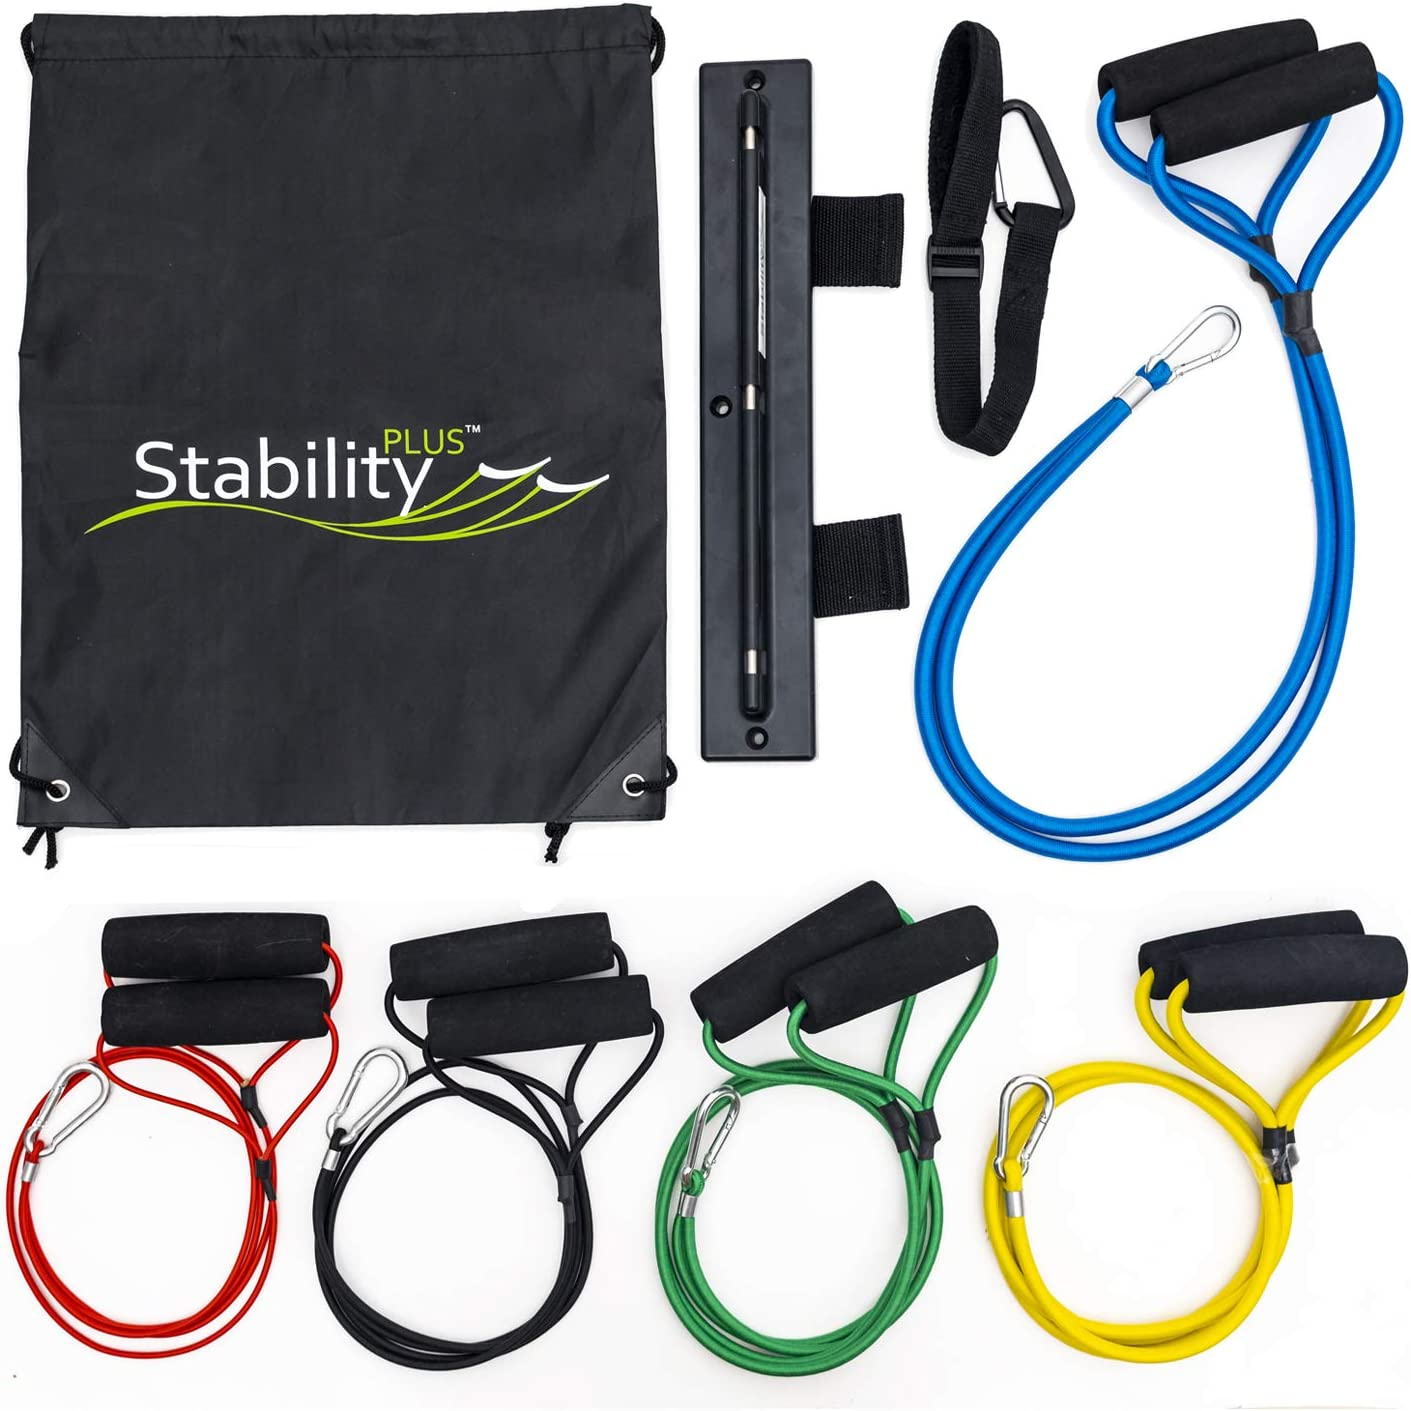 Stability Plus New Super Cords Kits - Industrial-Grade Bungee Cord Resistance Bands, Wall Mounts, Ankle Strap - Portable Home Gym Accessories - Superior to Traditional Latex Tube Bands…